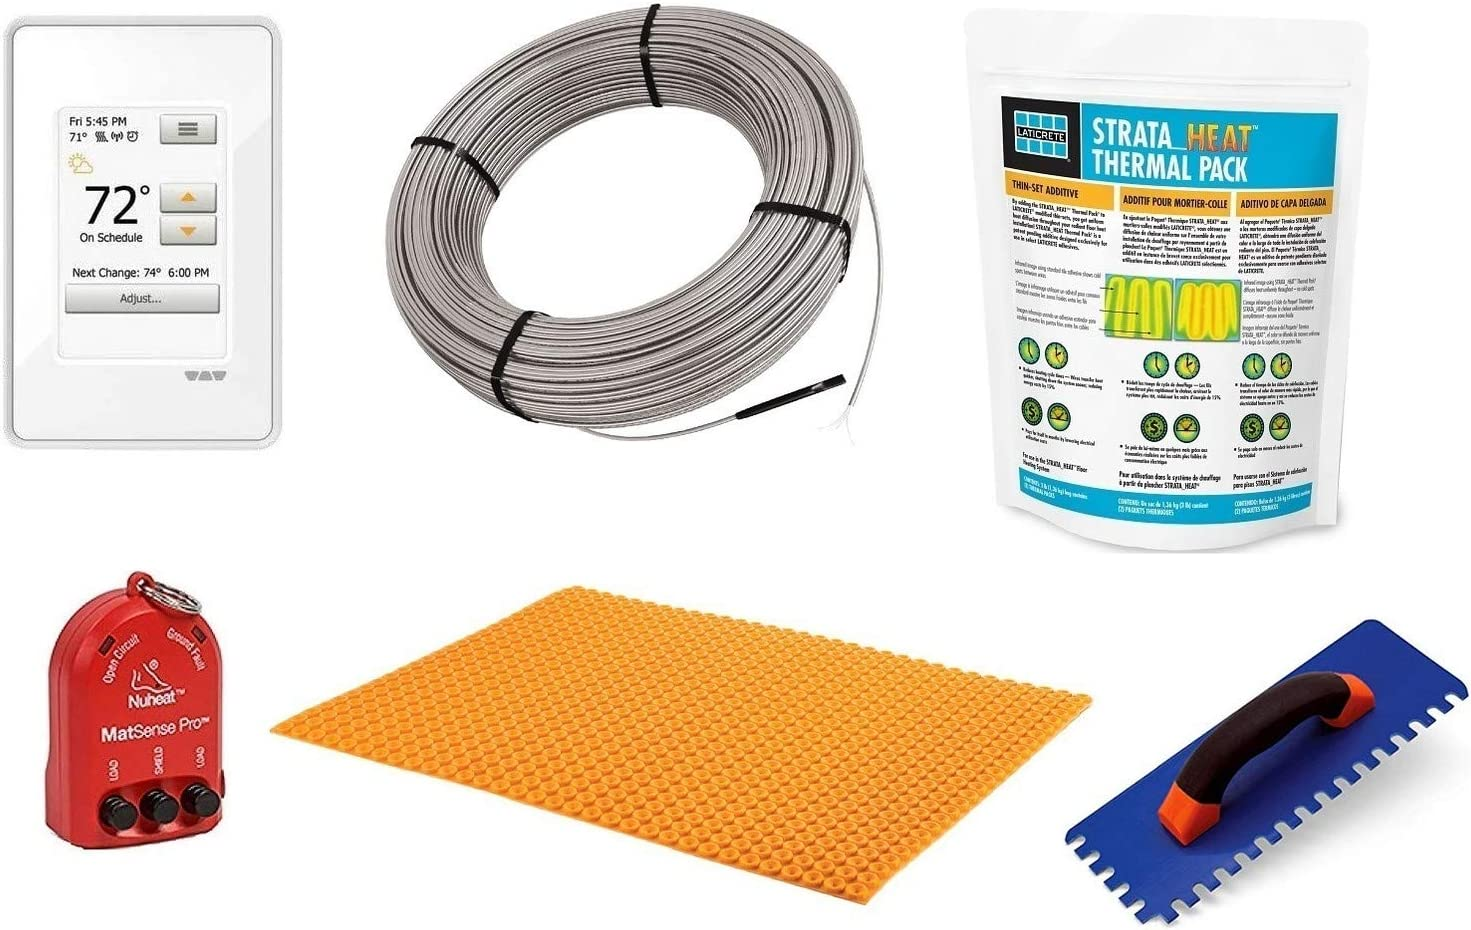 Schluter Ditra Signature Floor Heating Kit -64 Square Feet- Includes Touchscreen Programmable Thermostat, Heat Membrane, Heat Cable DHEHK12064, Safe Installation Tools, Heat Enhancing Additive